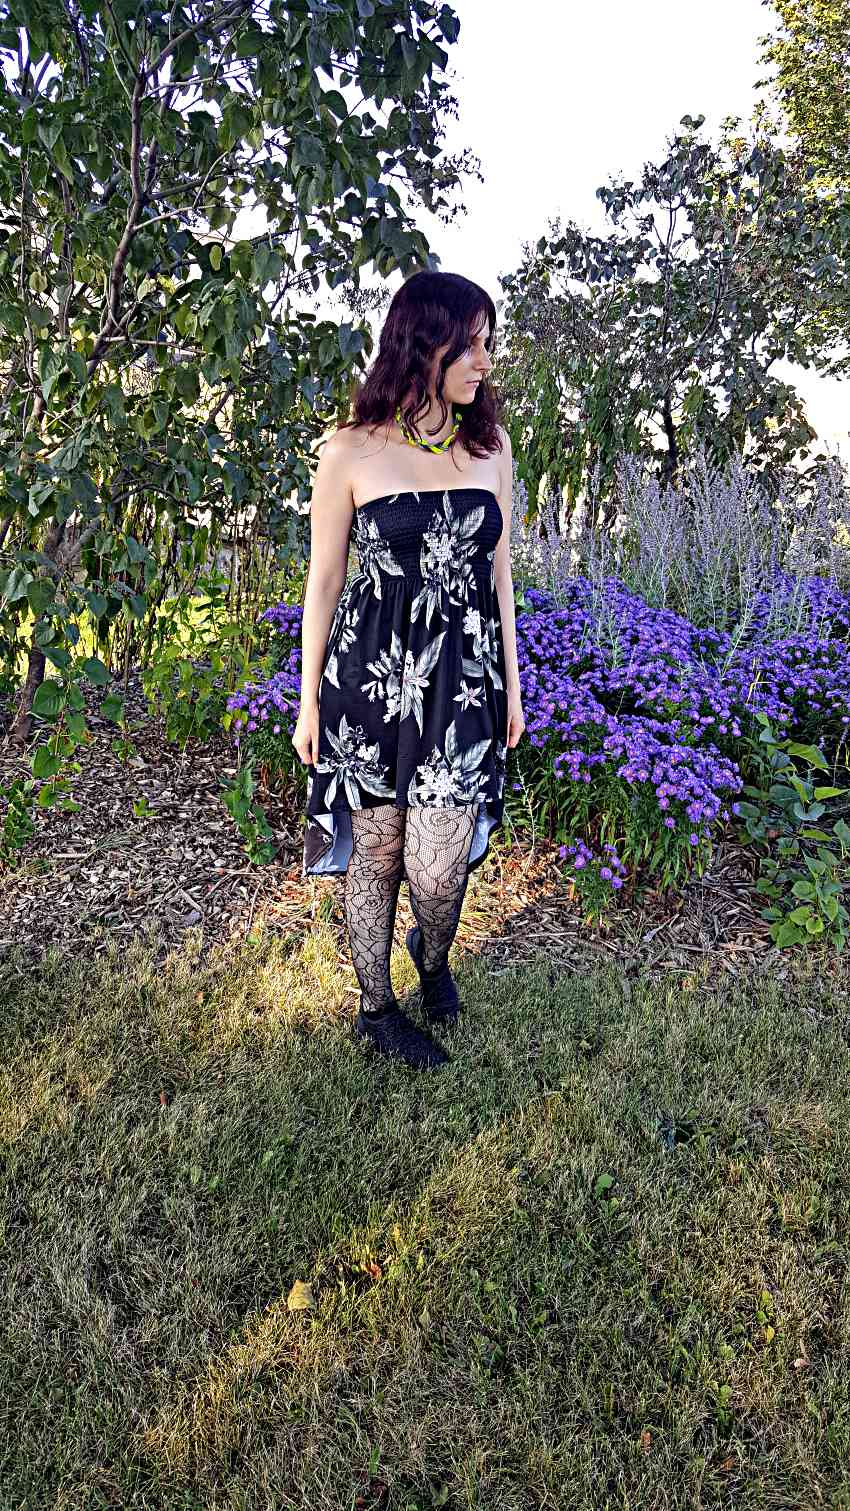 Polar Bear Style Black Lace Tights Tropical High-Low Dress Crystal Sneakers Braided Necklace